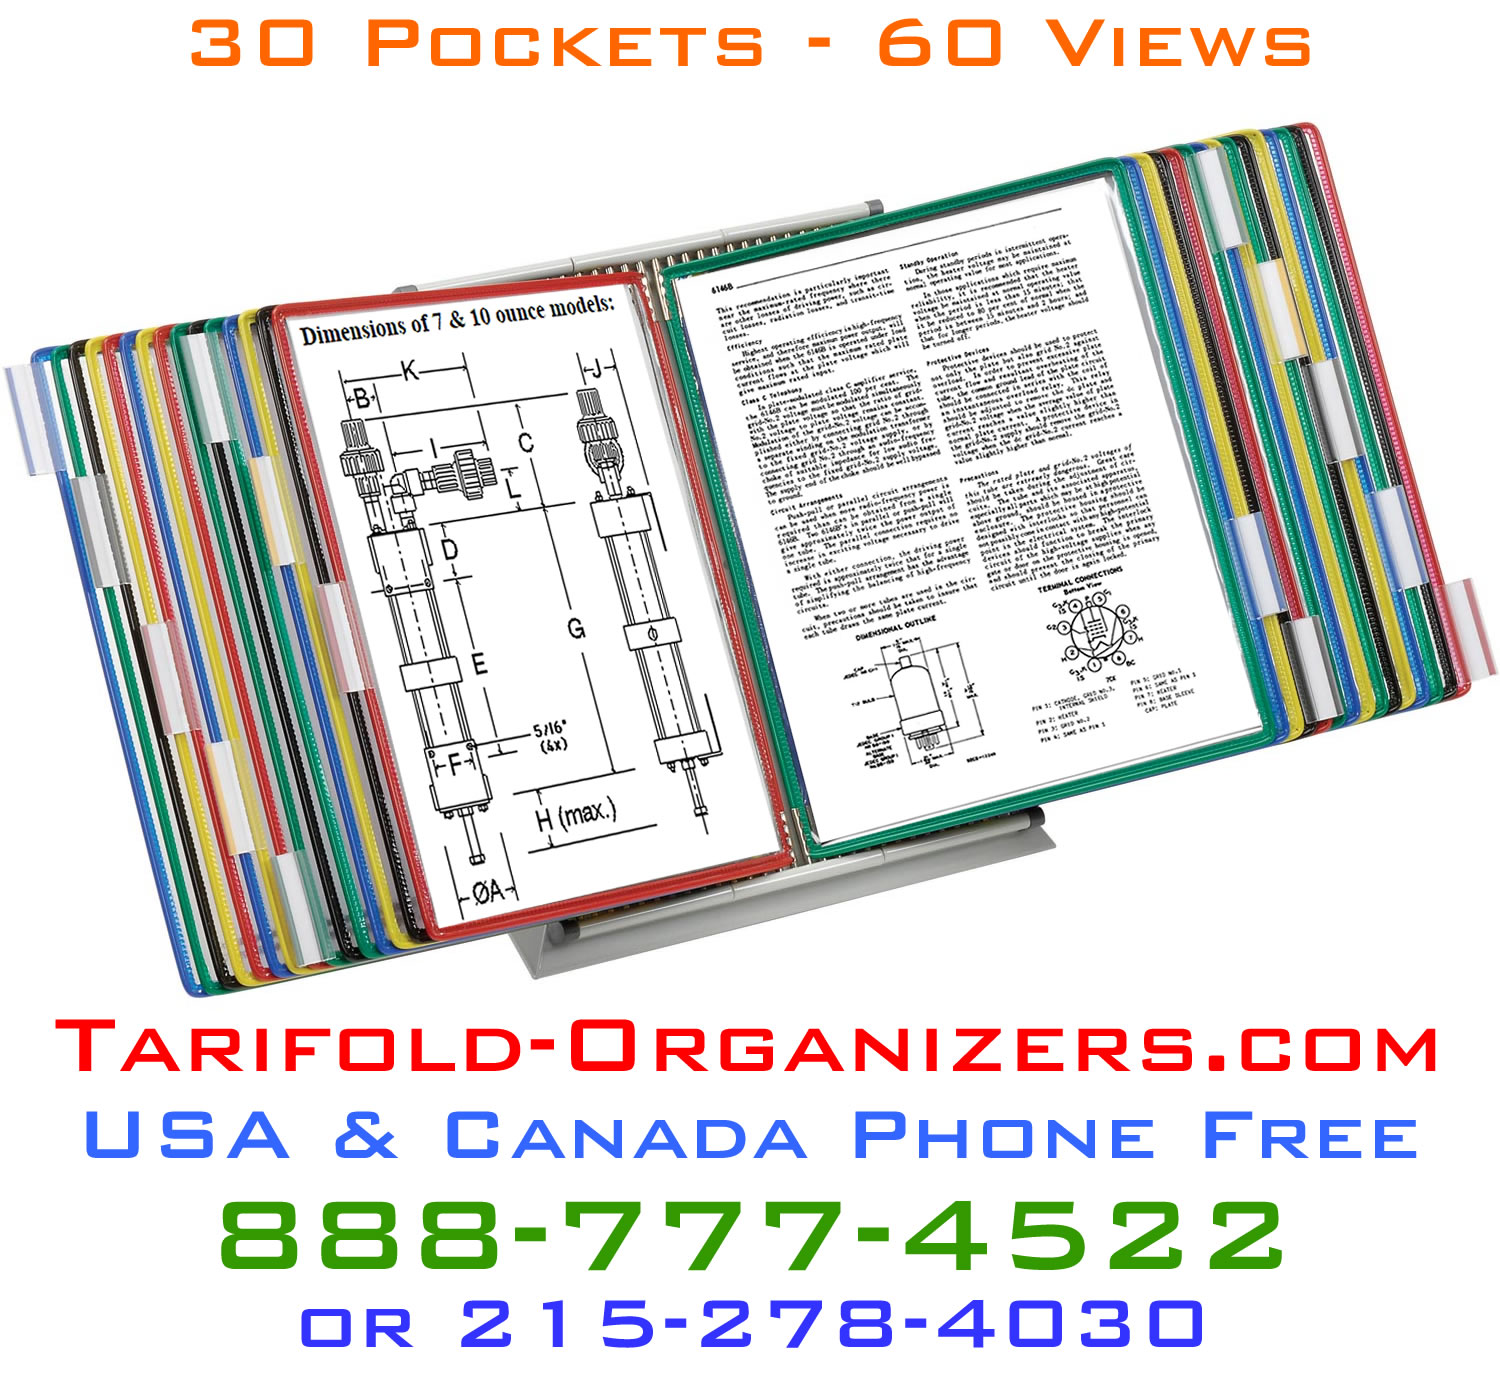 Tarifold Organizers D293 desktop organizer facilitates direct access to scores of data sheets for you immediate and ready reference requirements.